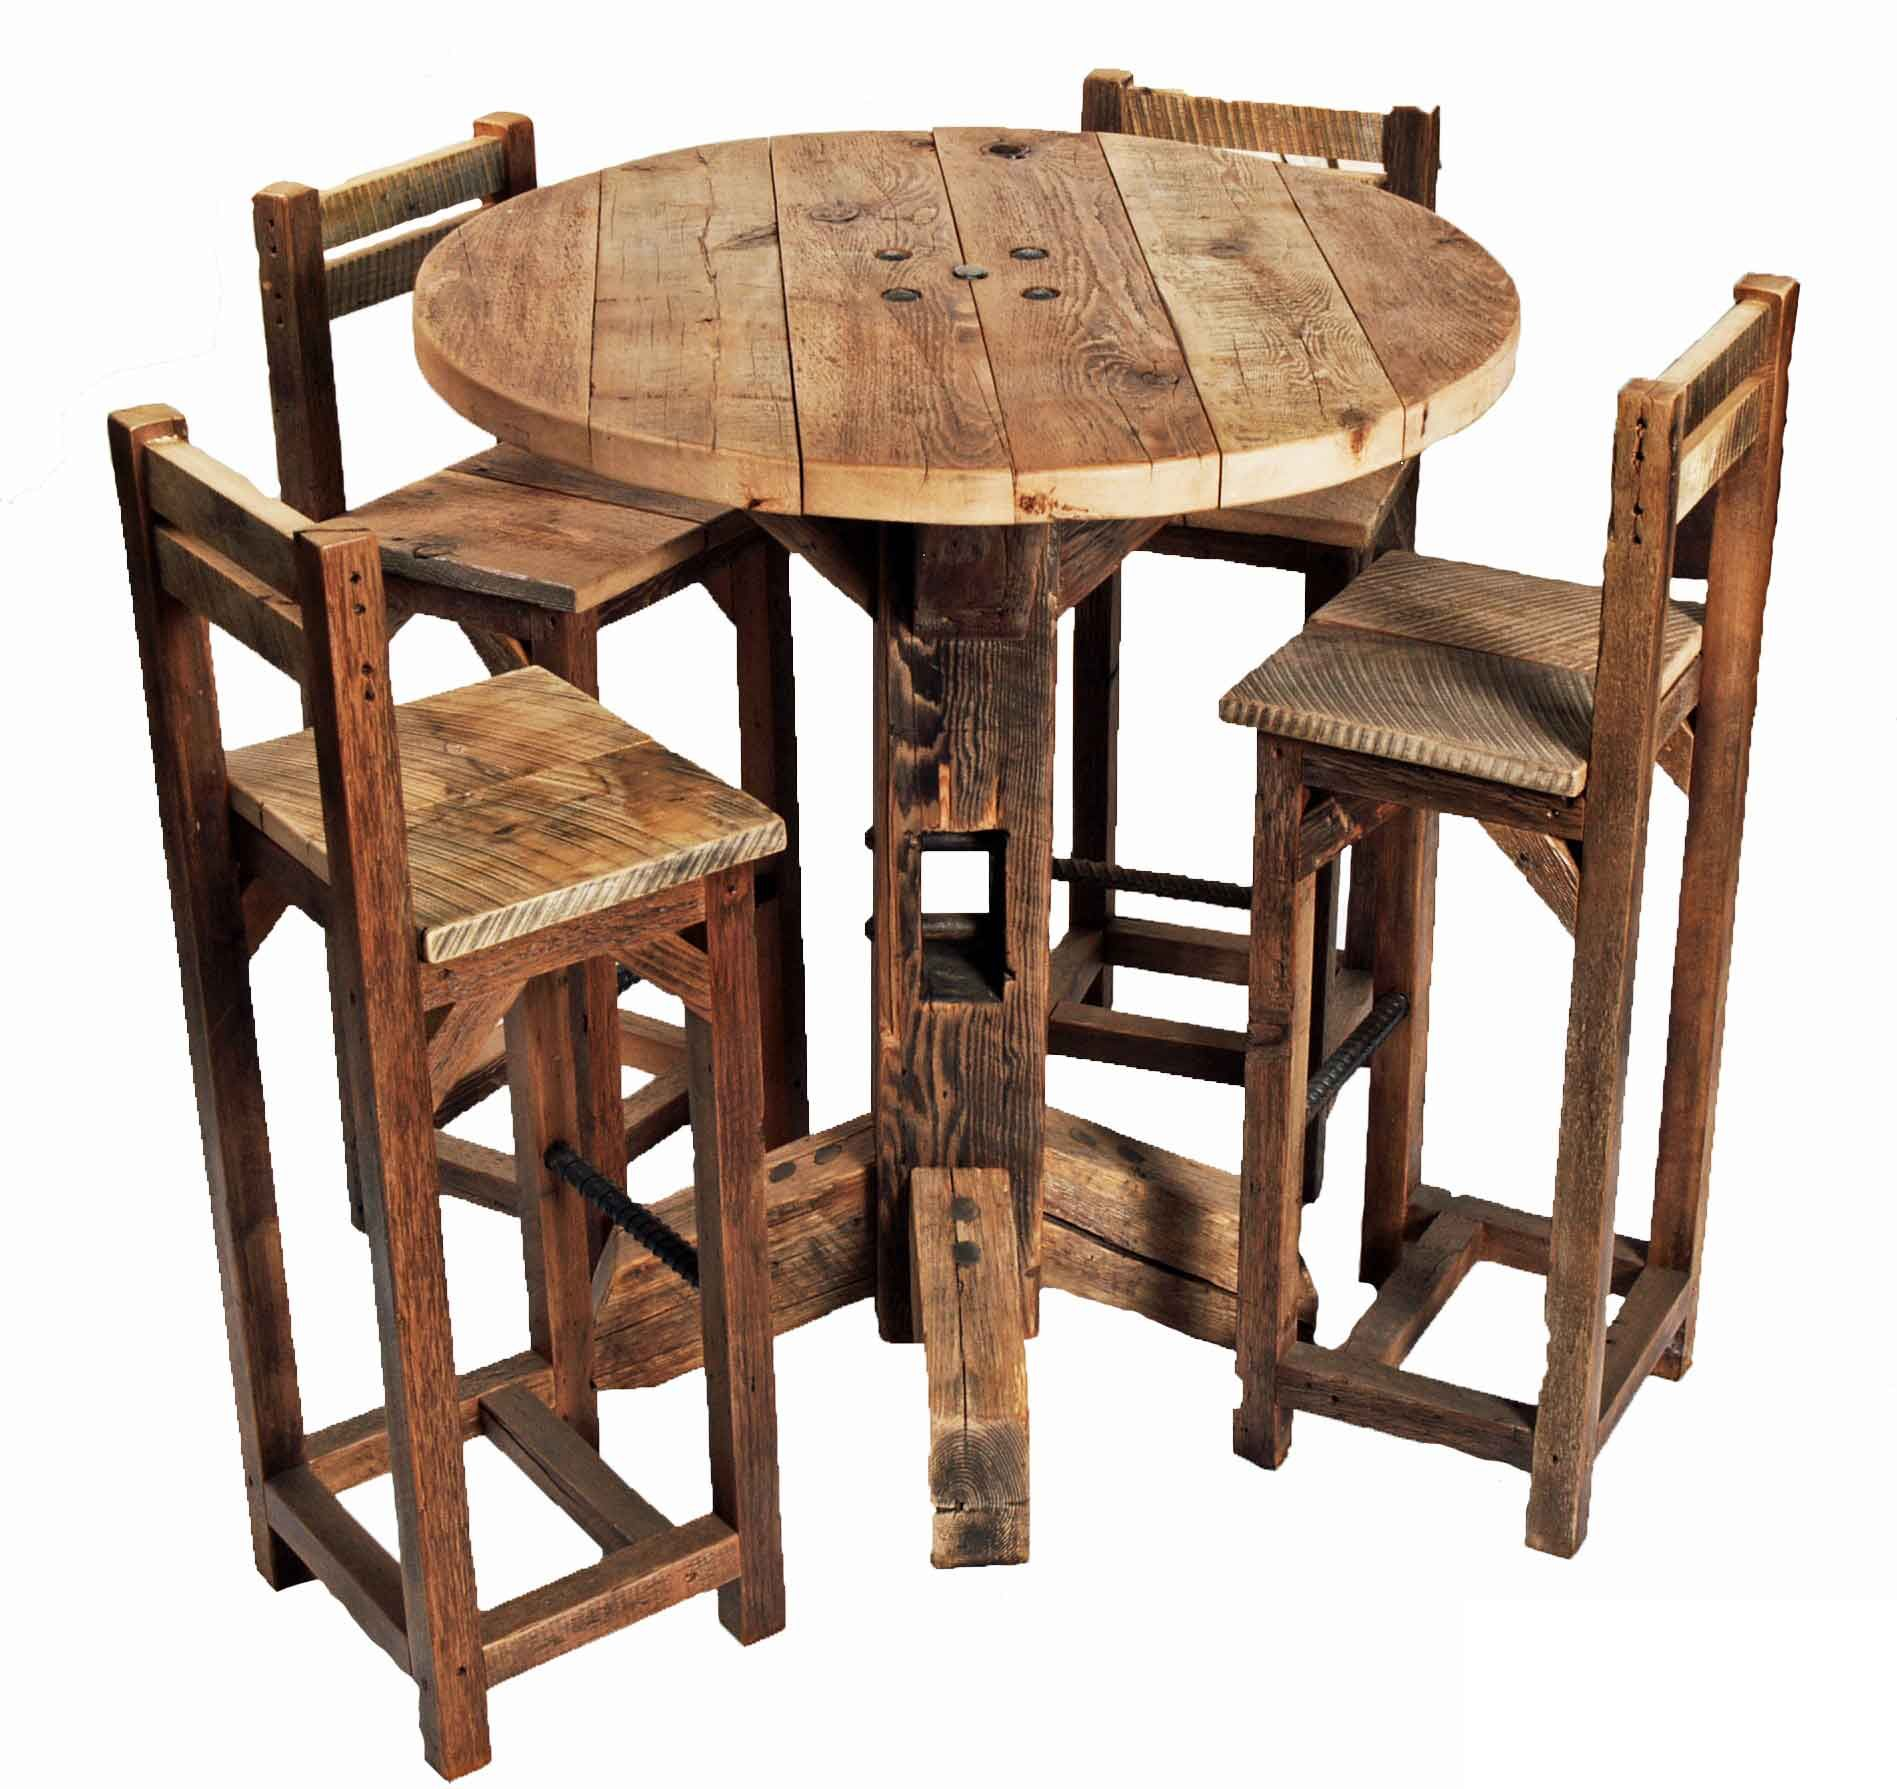 Ordinaire Furniture, Old Rustic Small High Round Top Kitchen Table And Chair With  High Legs And Back Ideas ~ High Top Kitchen Table Sets